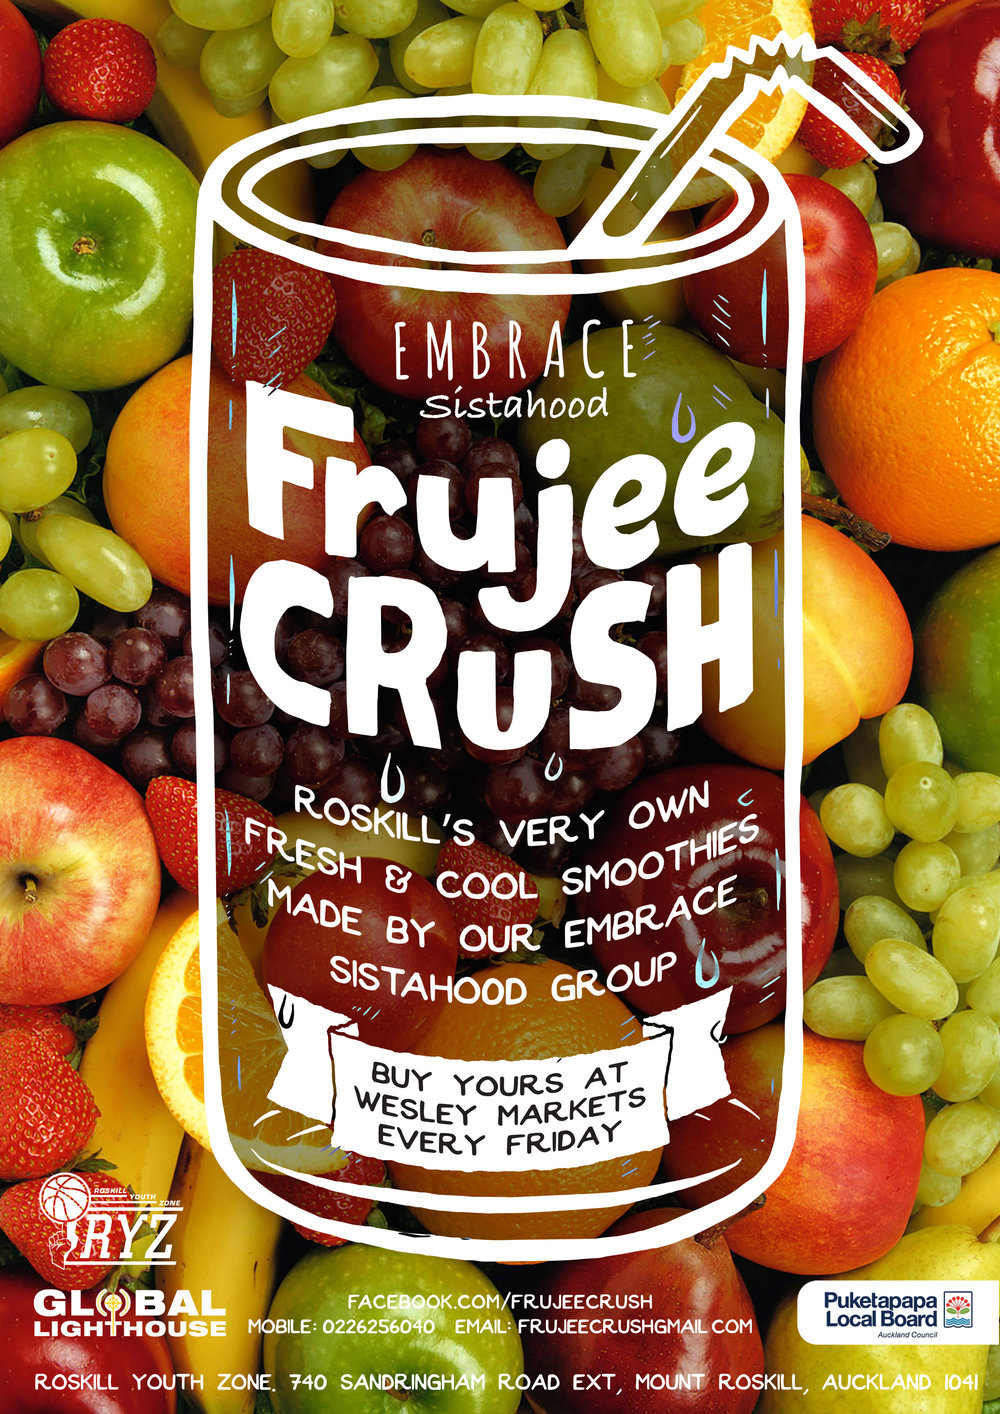 Frujee-CRUSH.jpg